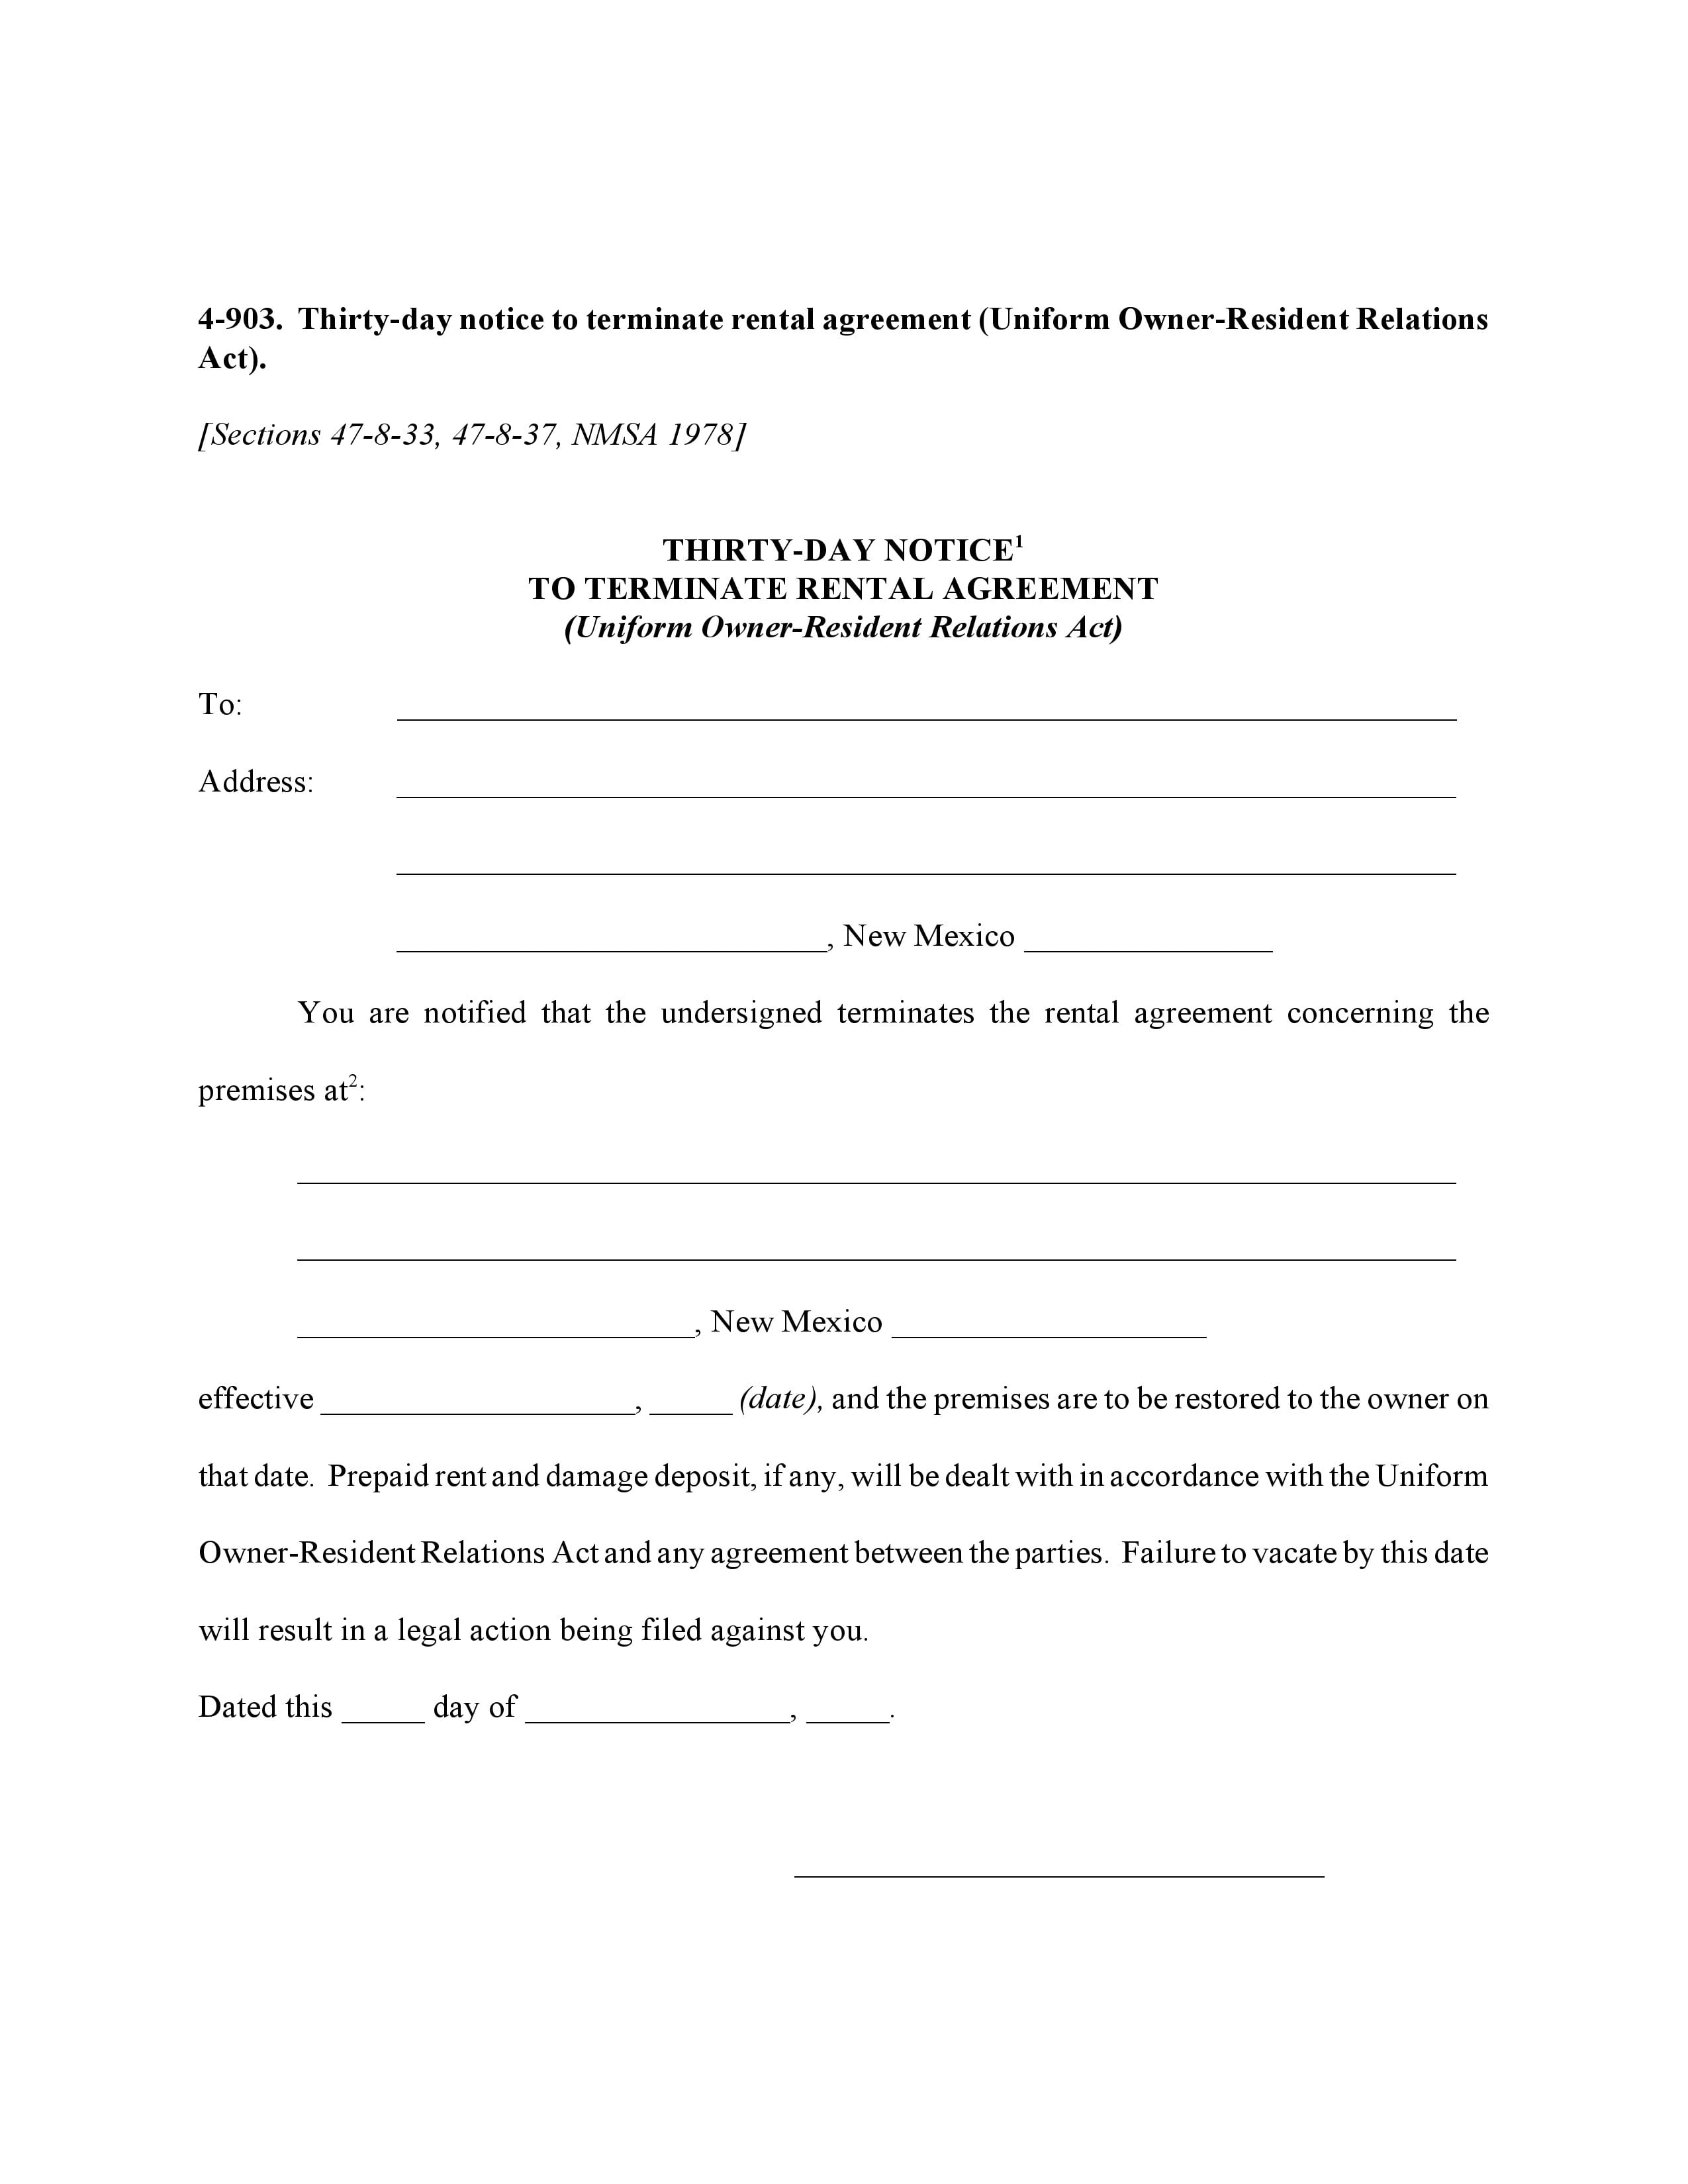 New Mexico 30 Day Notice to Terminate Rental Agreement